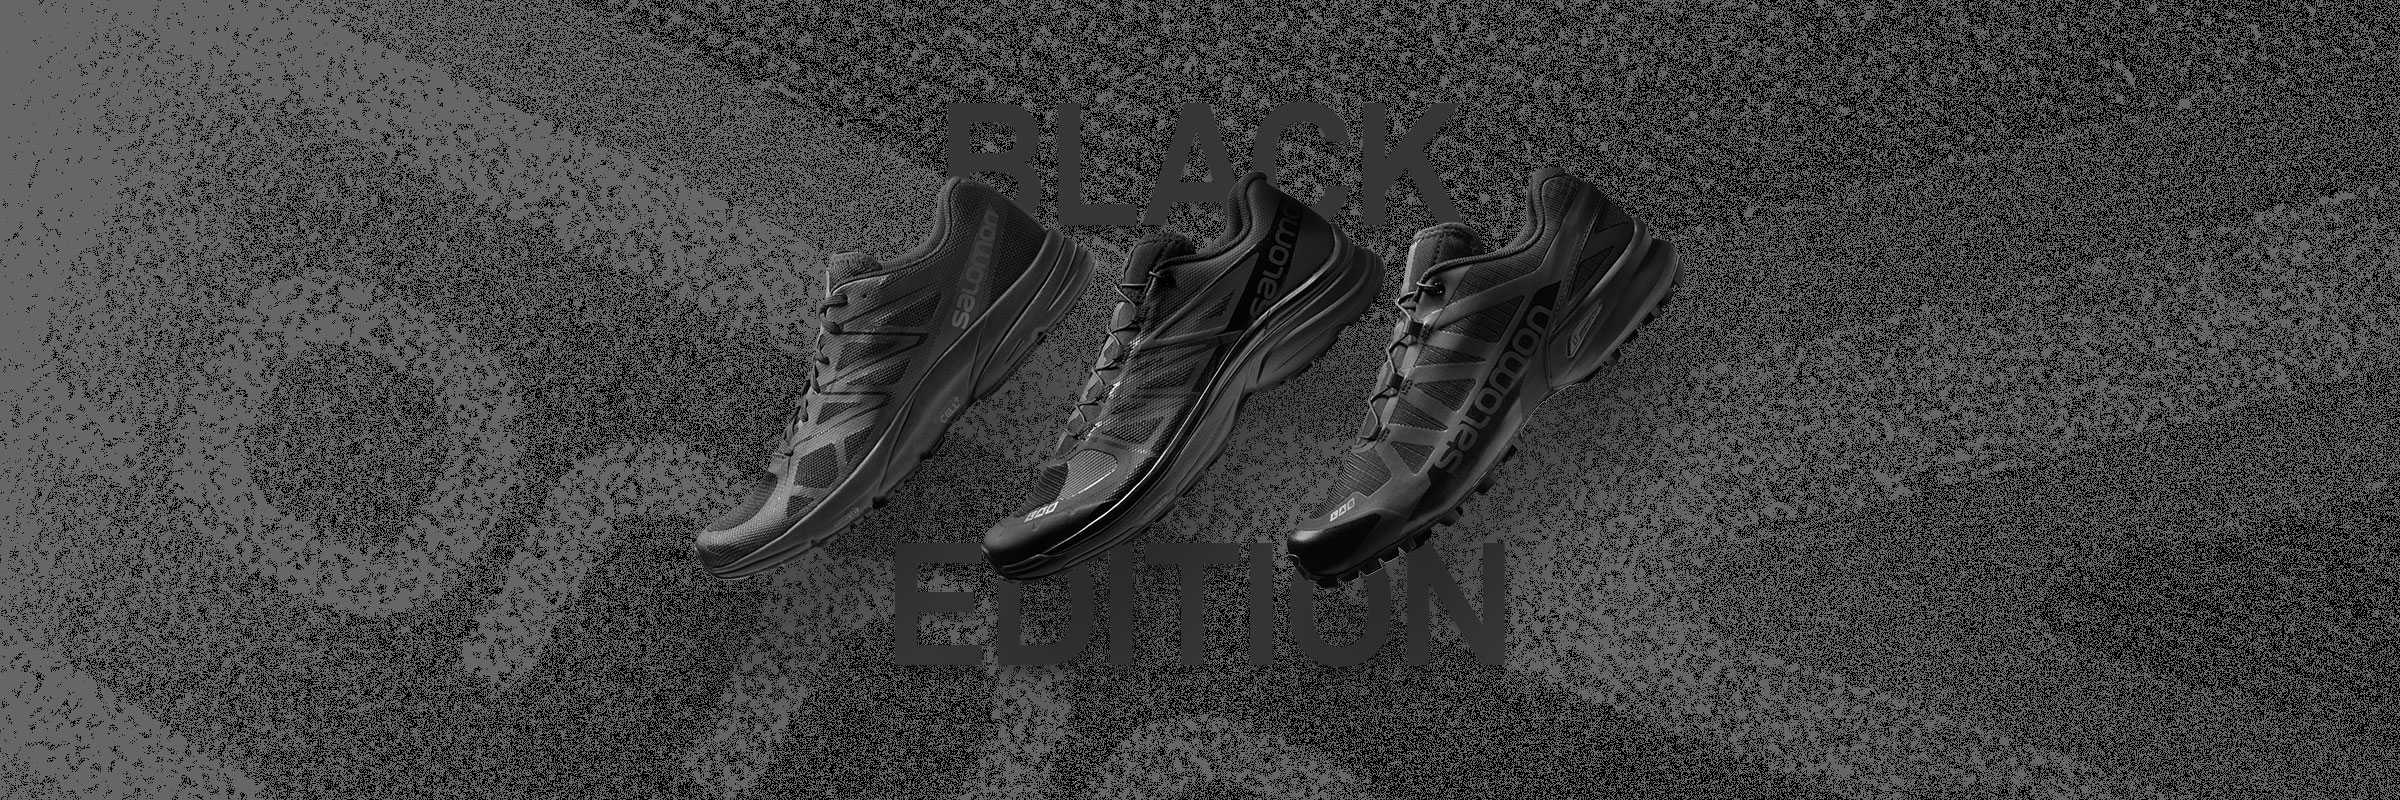 . Discover the Limited Edition Salomon S/LAB Black Edition Collection